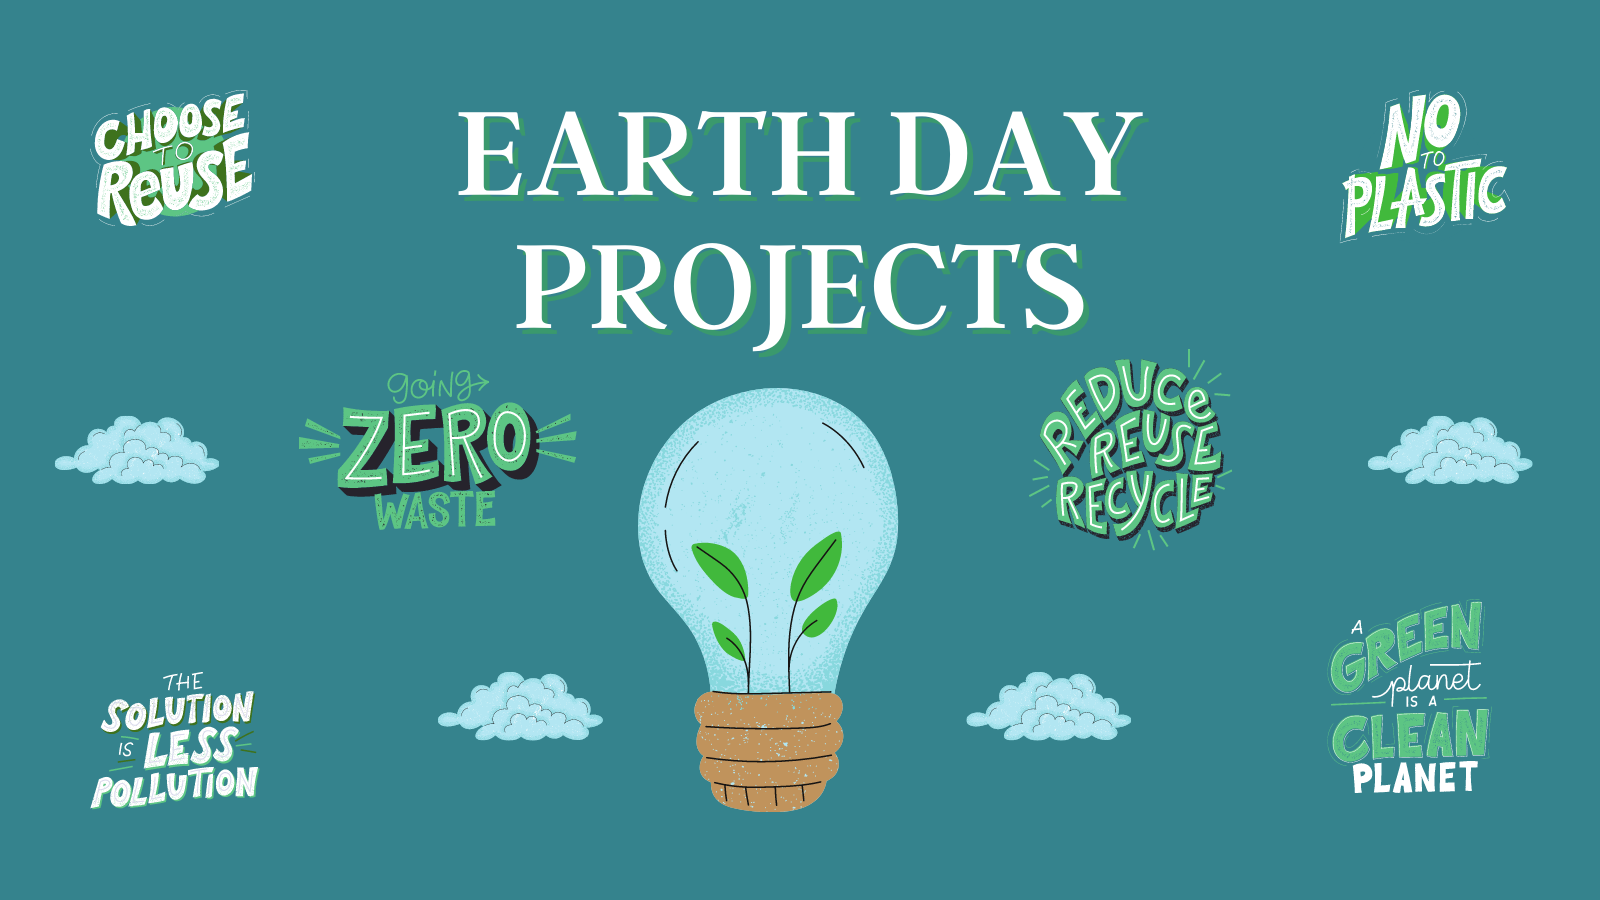 earth day projects graphic